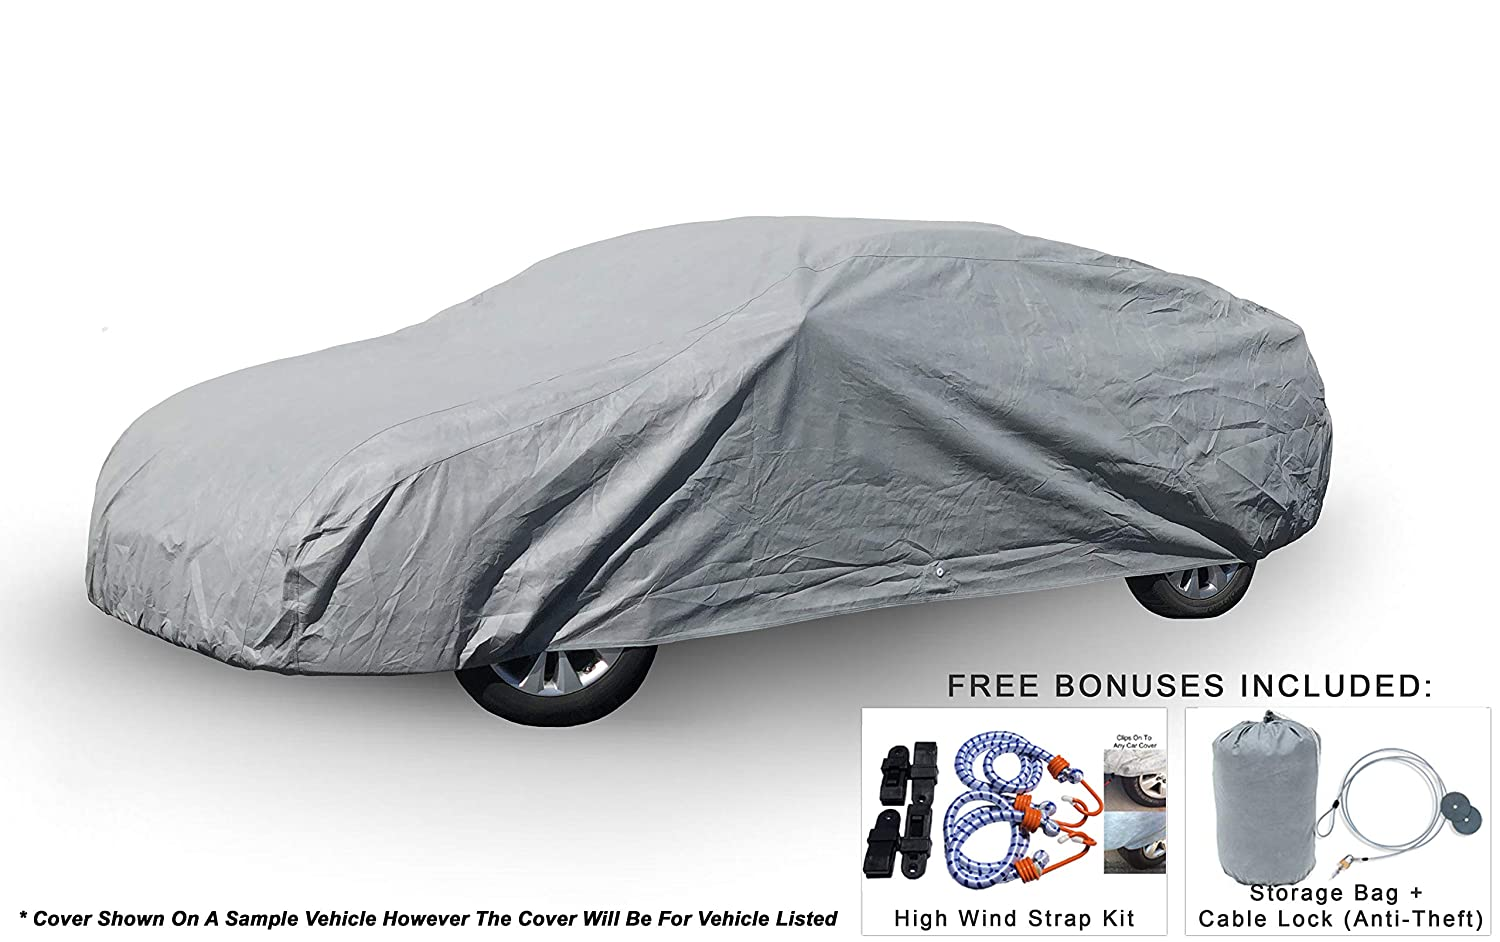 Weatherproof Car Cover Compatible with Alfa Romeo Giulia 2017-2019 - 5L Outdoor & Indoor - Protect from Rain, Snow, Hail, UV Rays, Sun - Fleece Lining - Anti-Theft Cable Lock, Bag & Wind Straps